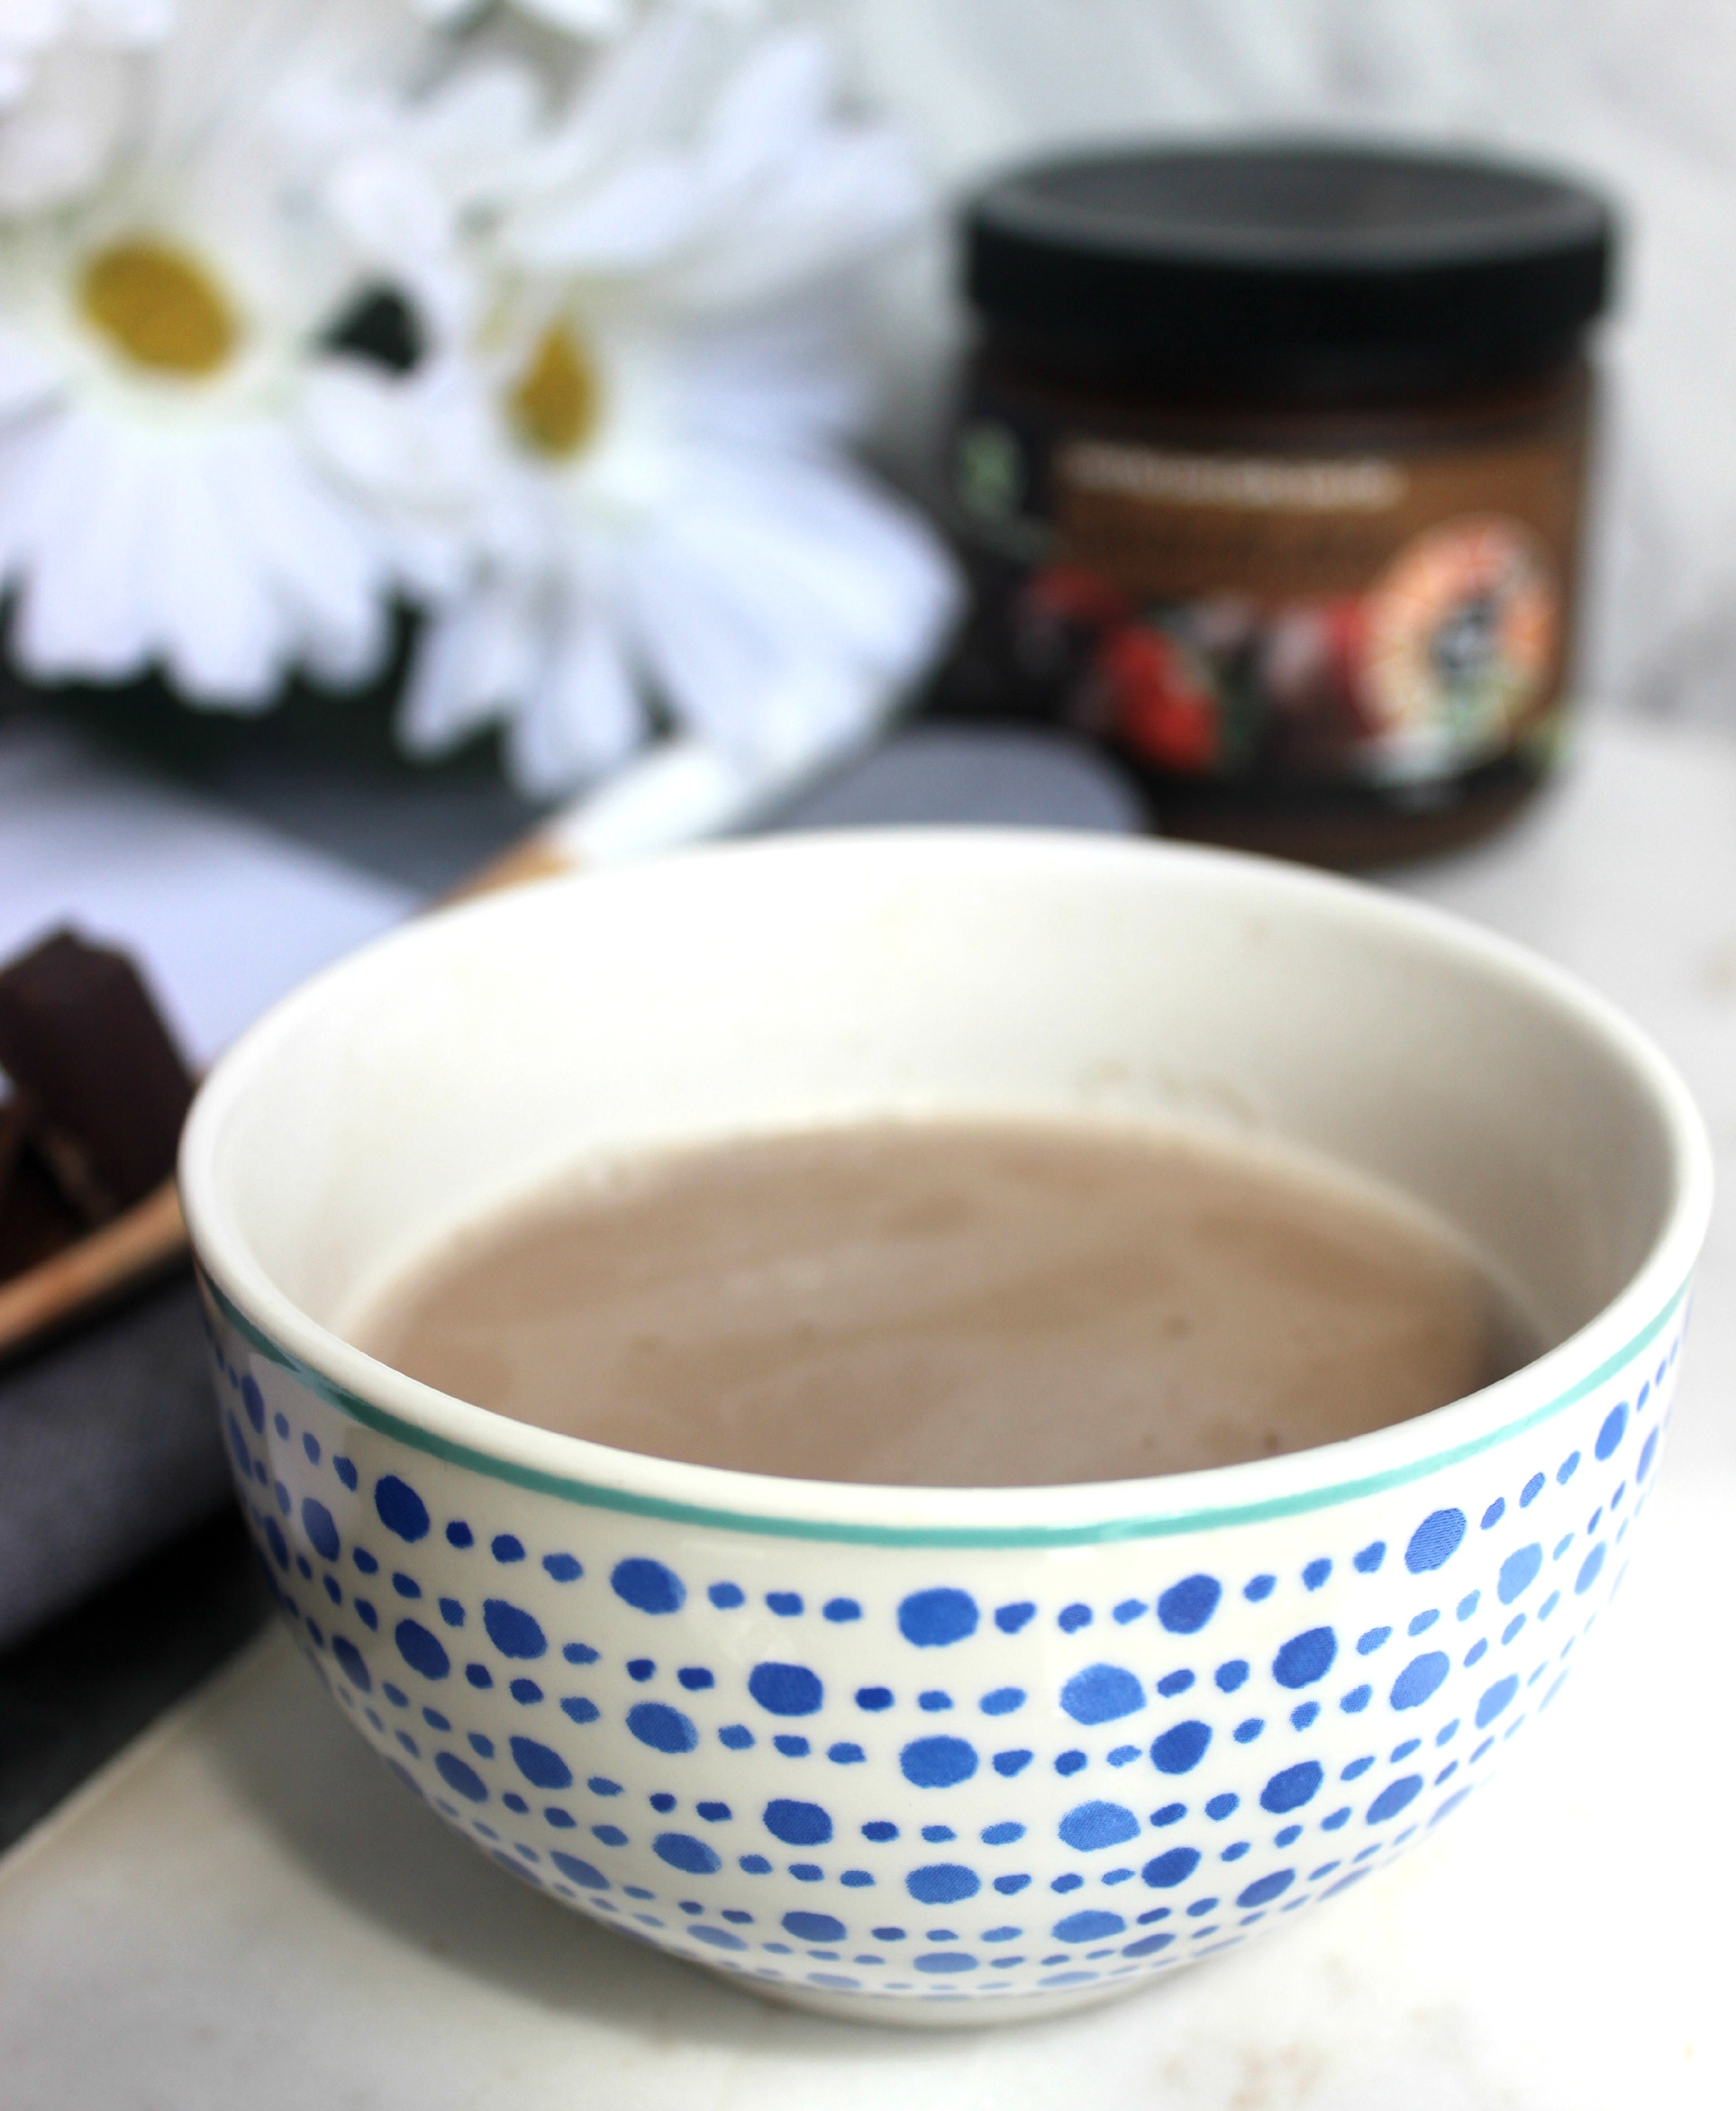 Sugar free hot chocolate - Her Nourished